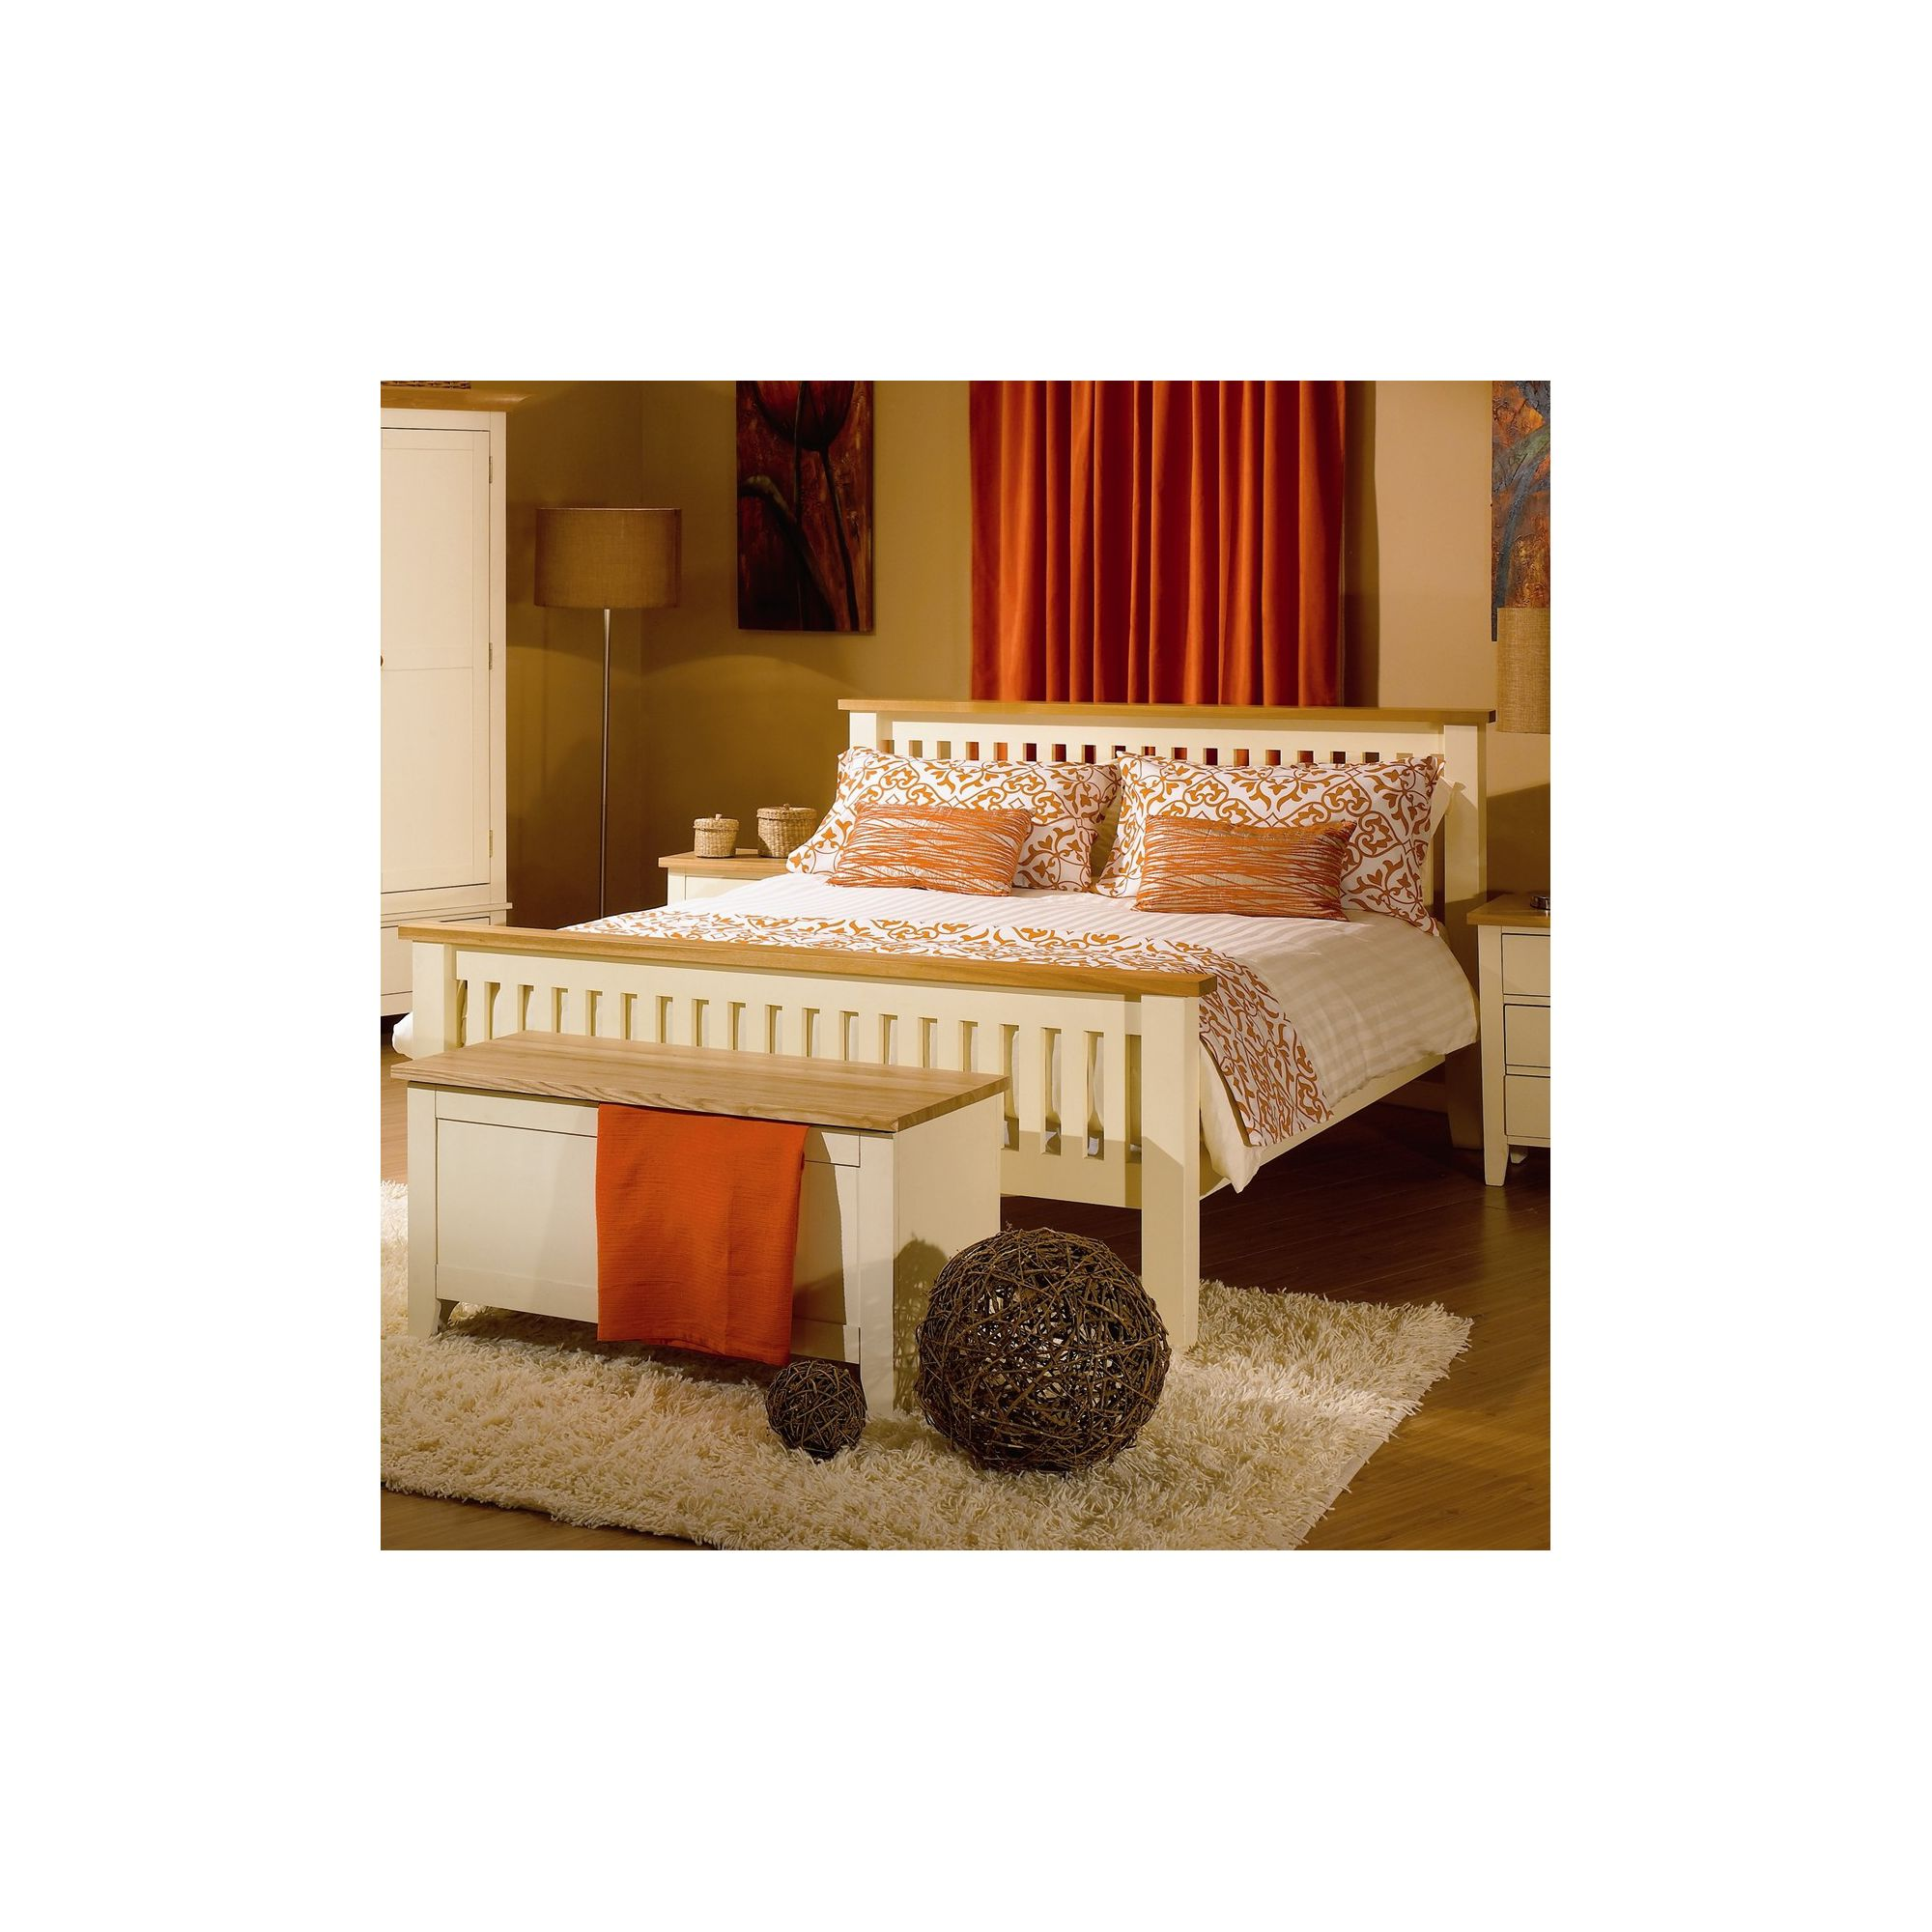 Kelburn Furniture Fanshawe Painted Bed Frame - Single at Tesco Direct